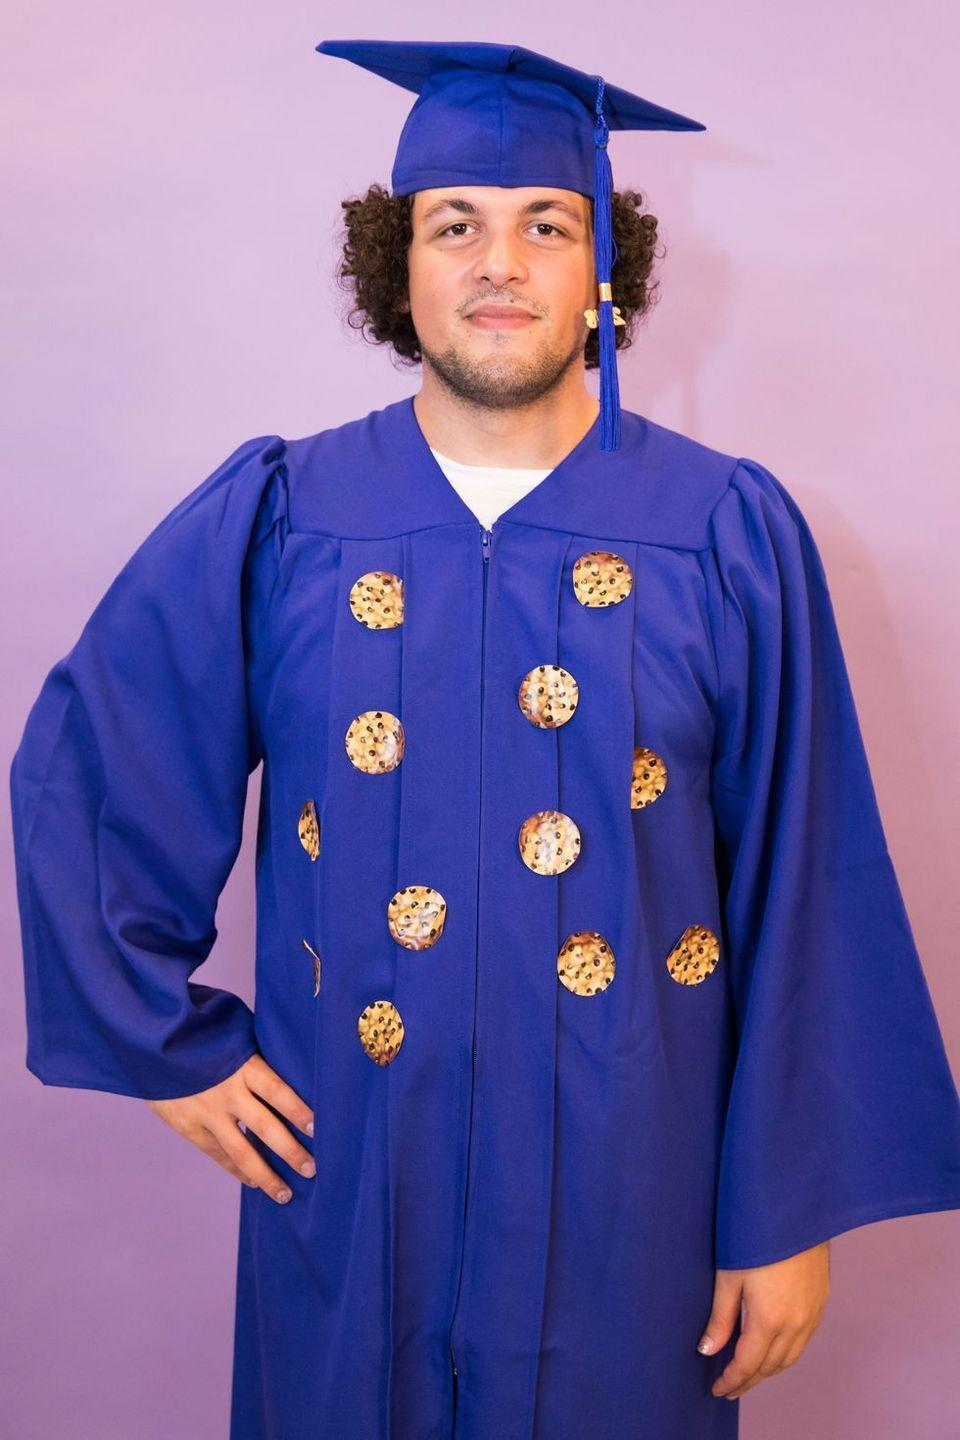 """<p>If you still have your graduation gown, you can replicate this costume in seconds. Or, you can buy a set for under $25.</p><p><a class=""""link rapid-noclick-resp"""" href=""""https://www.amazon.com/GraduationForYou-Matte-Graduation-Tassel-45inFF/dp/B01M03XKSY/?tag=syn-yahoo-20&ascsubtag=%5Bartid%7C10055.g.21965973%5Bsrc%7Cyahoo-us"""" rel=""""nofollow noopener"""" target=""""_blank"""" data-ylk=""""slk:SHOP CAP AND GOWN"""">SHOP CAP AND GOWN</a></p>"""